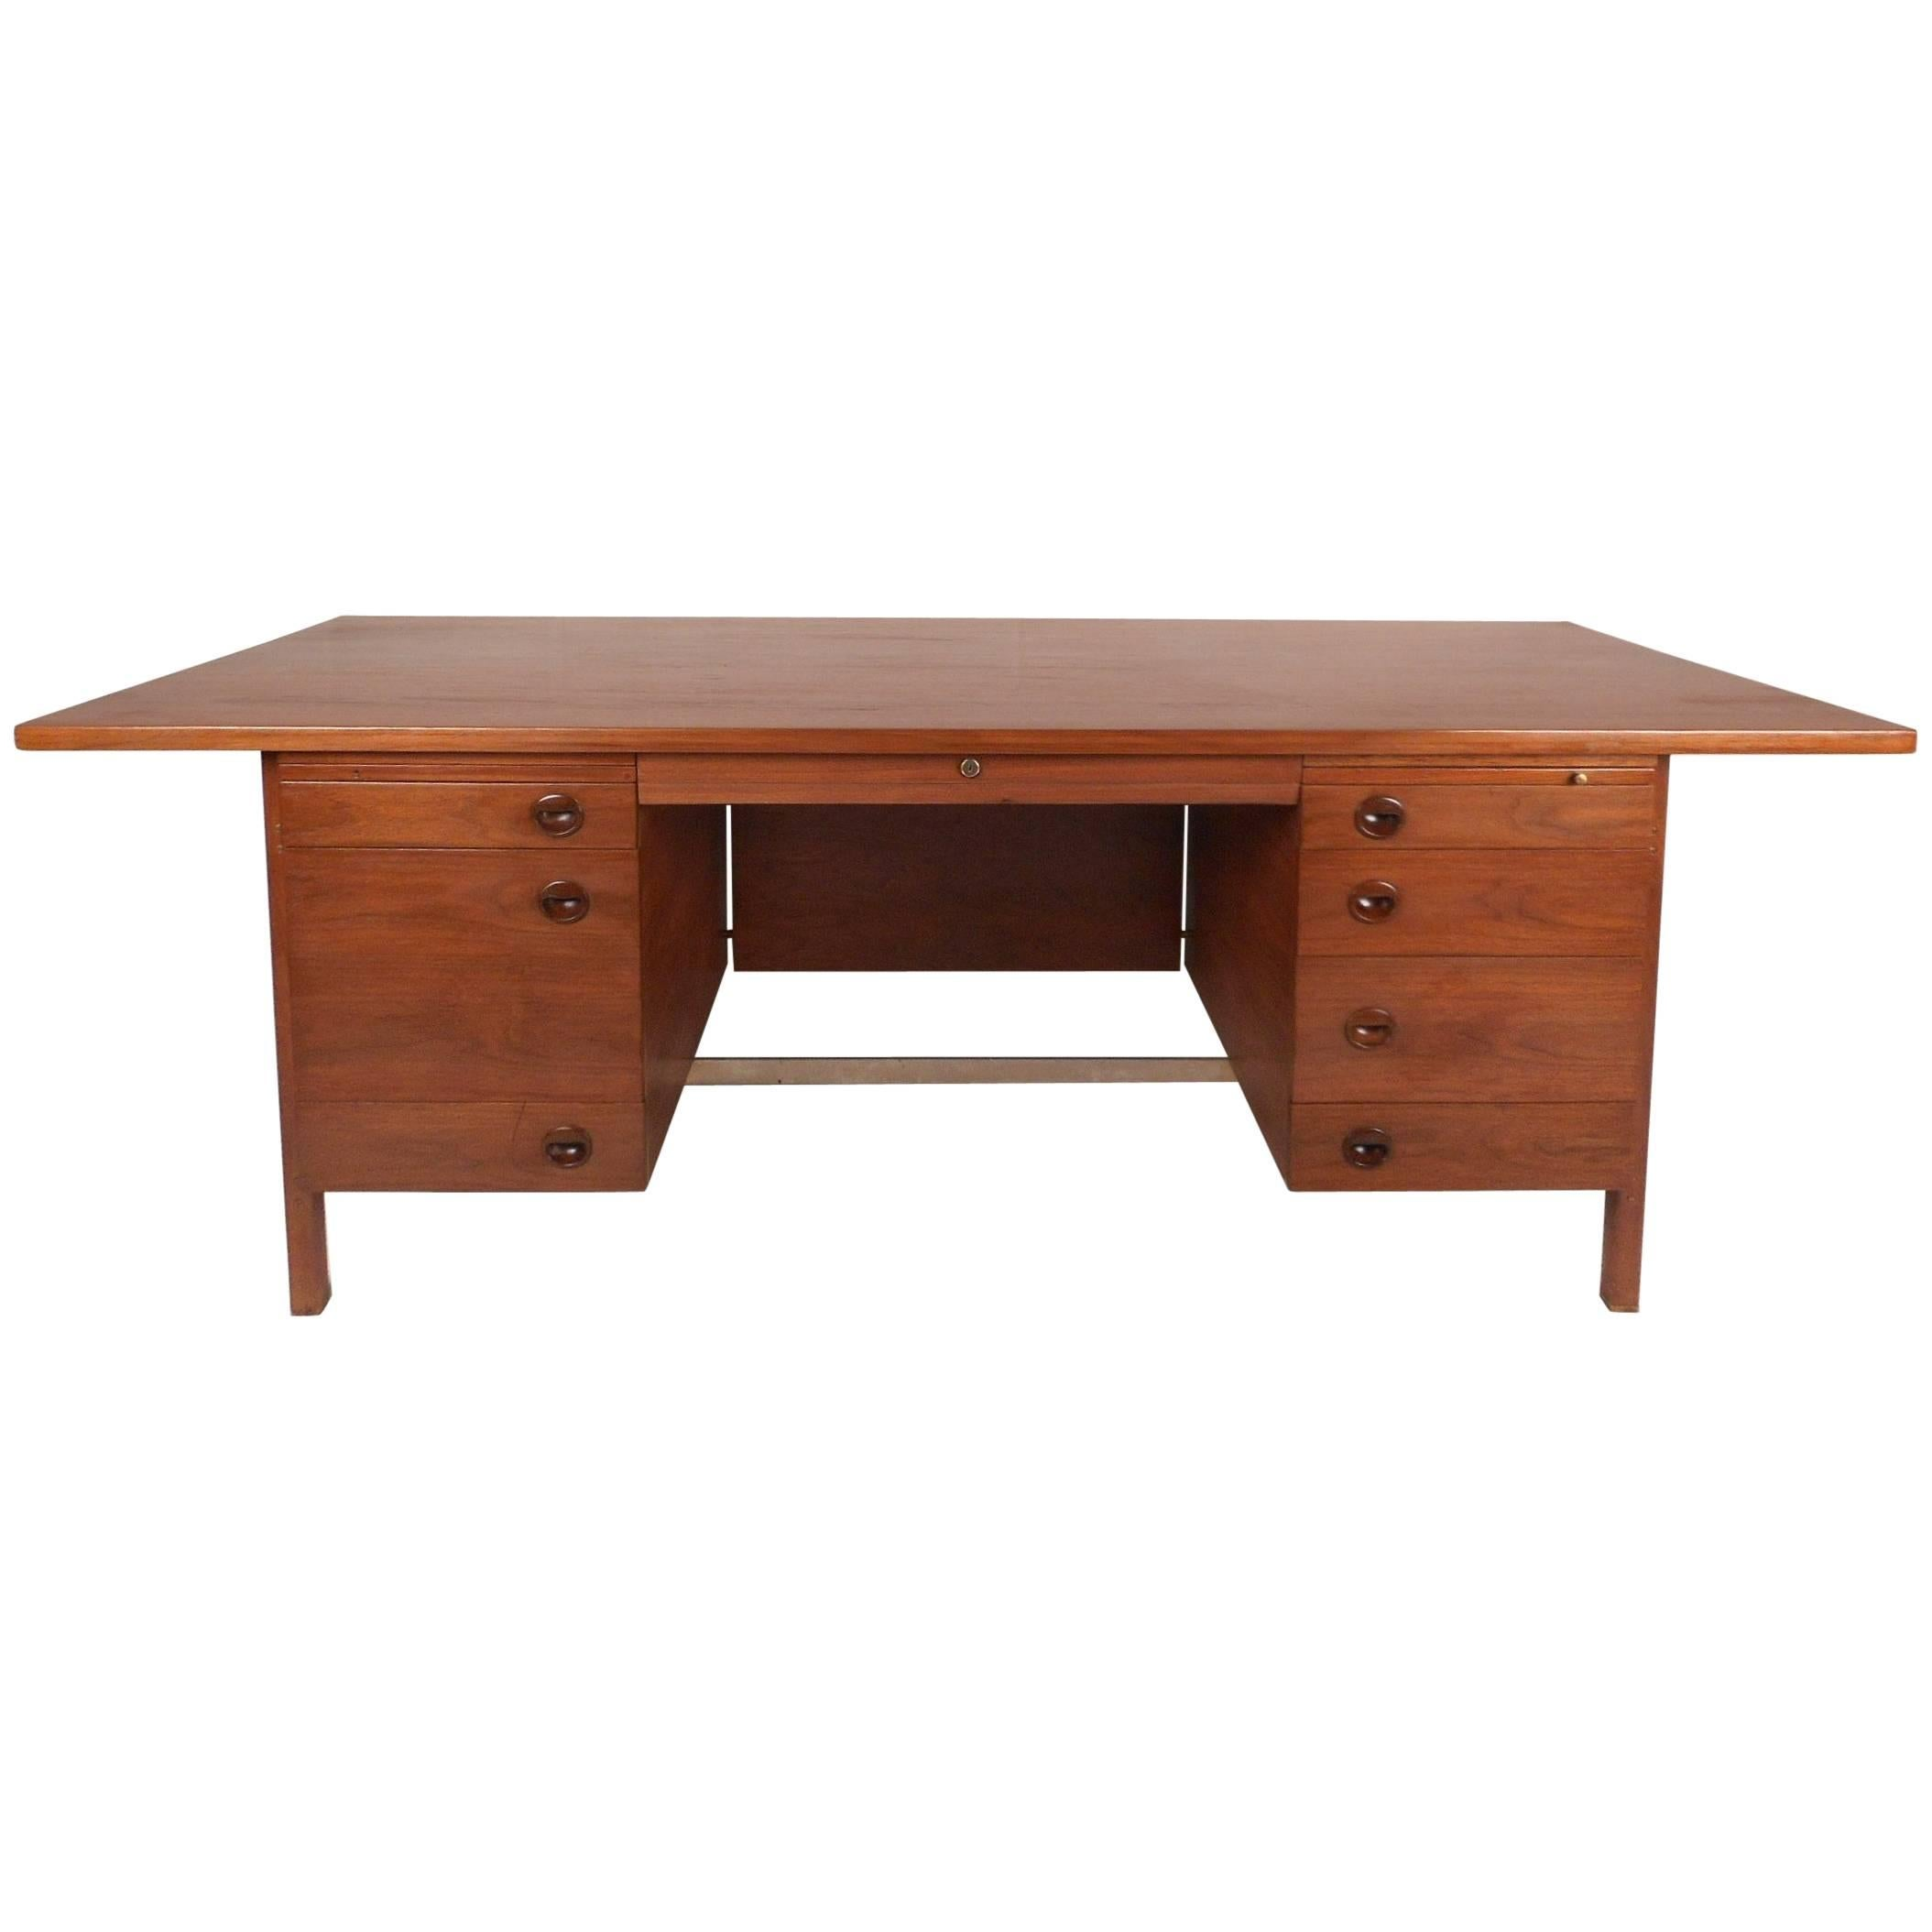 Dunbar Furniture Executive Desk